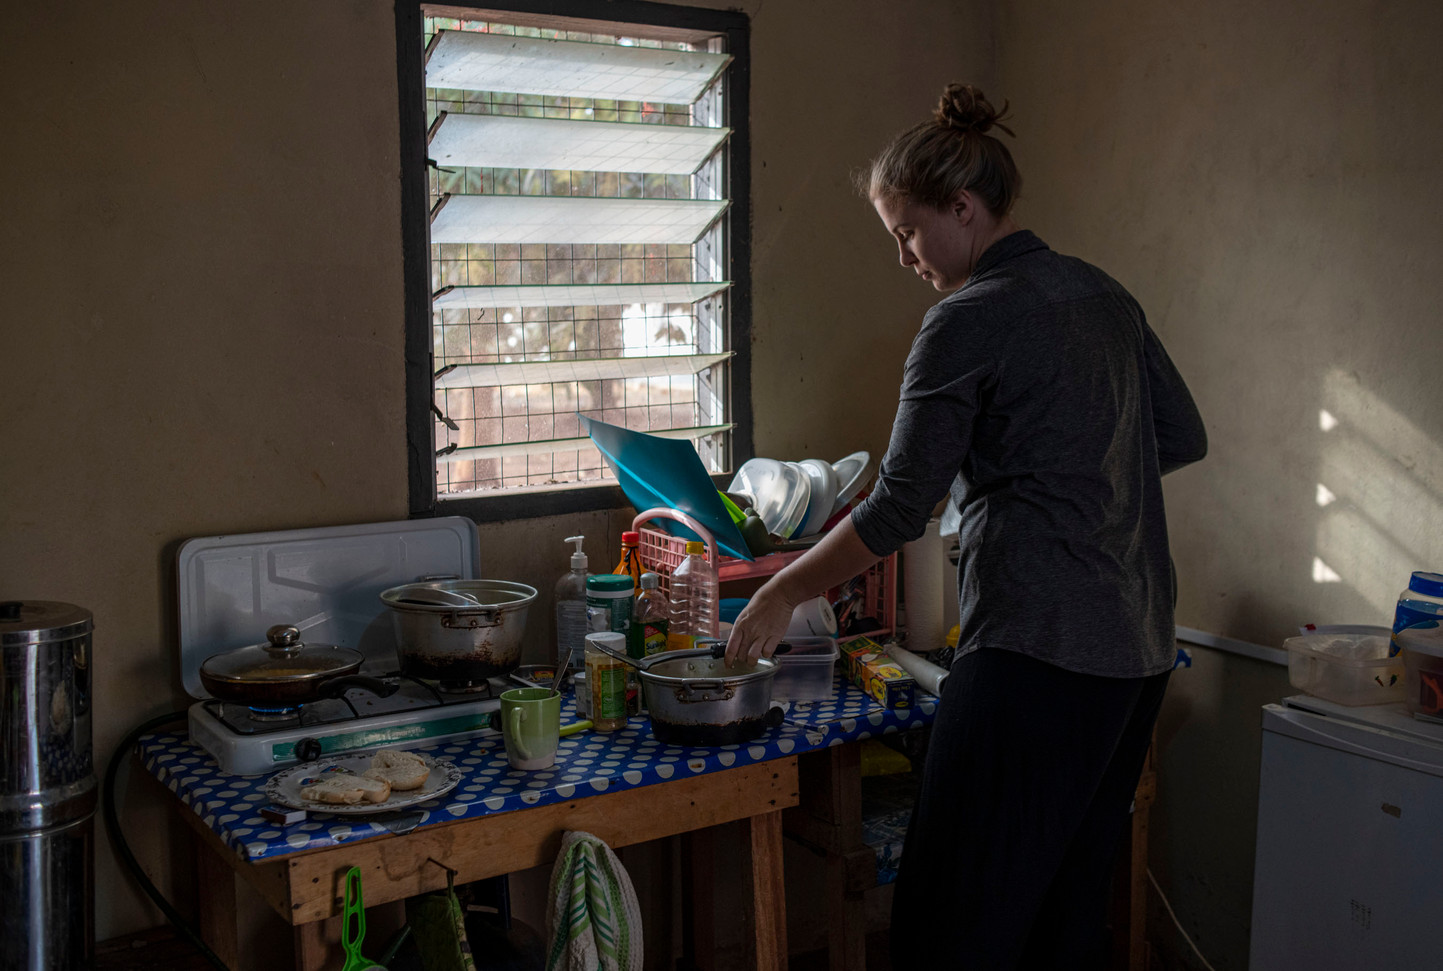 Biological anthropologist Diana Christie in her kitchen at the Boabeng Fiema Monkey Sanctuary Guesthouse where she lives for 6 months a year while conducting field research. Boabeng, Ghana 2020